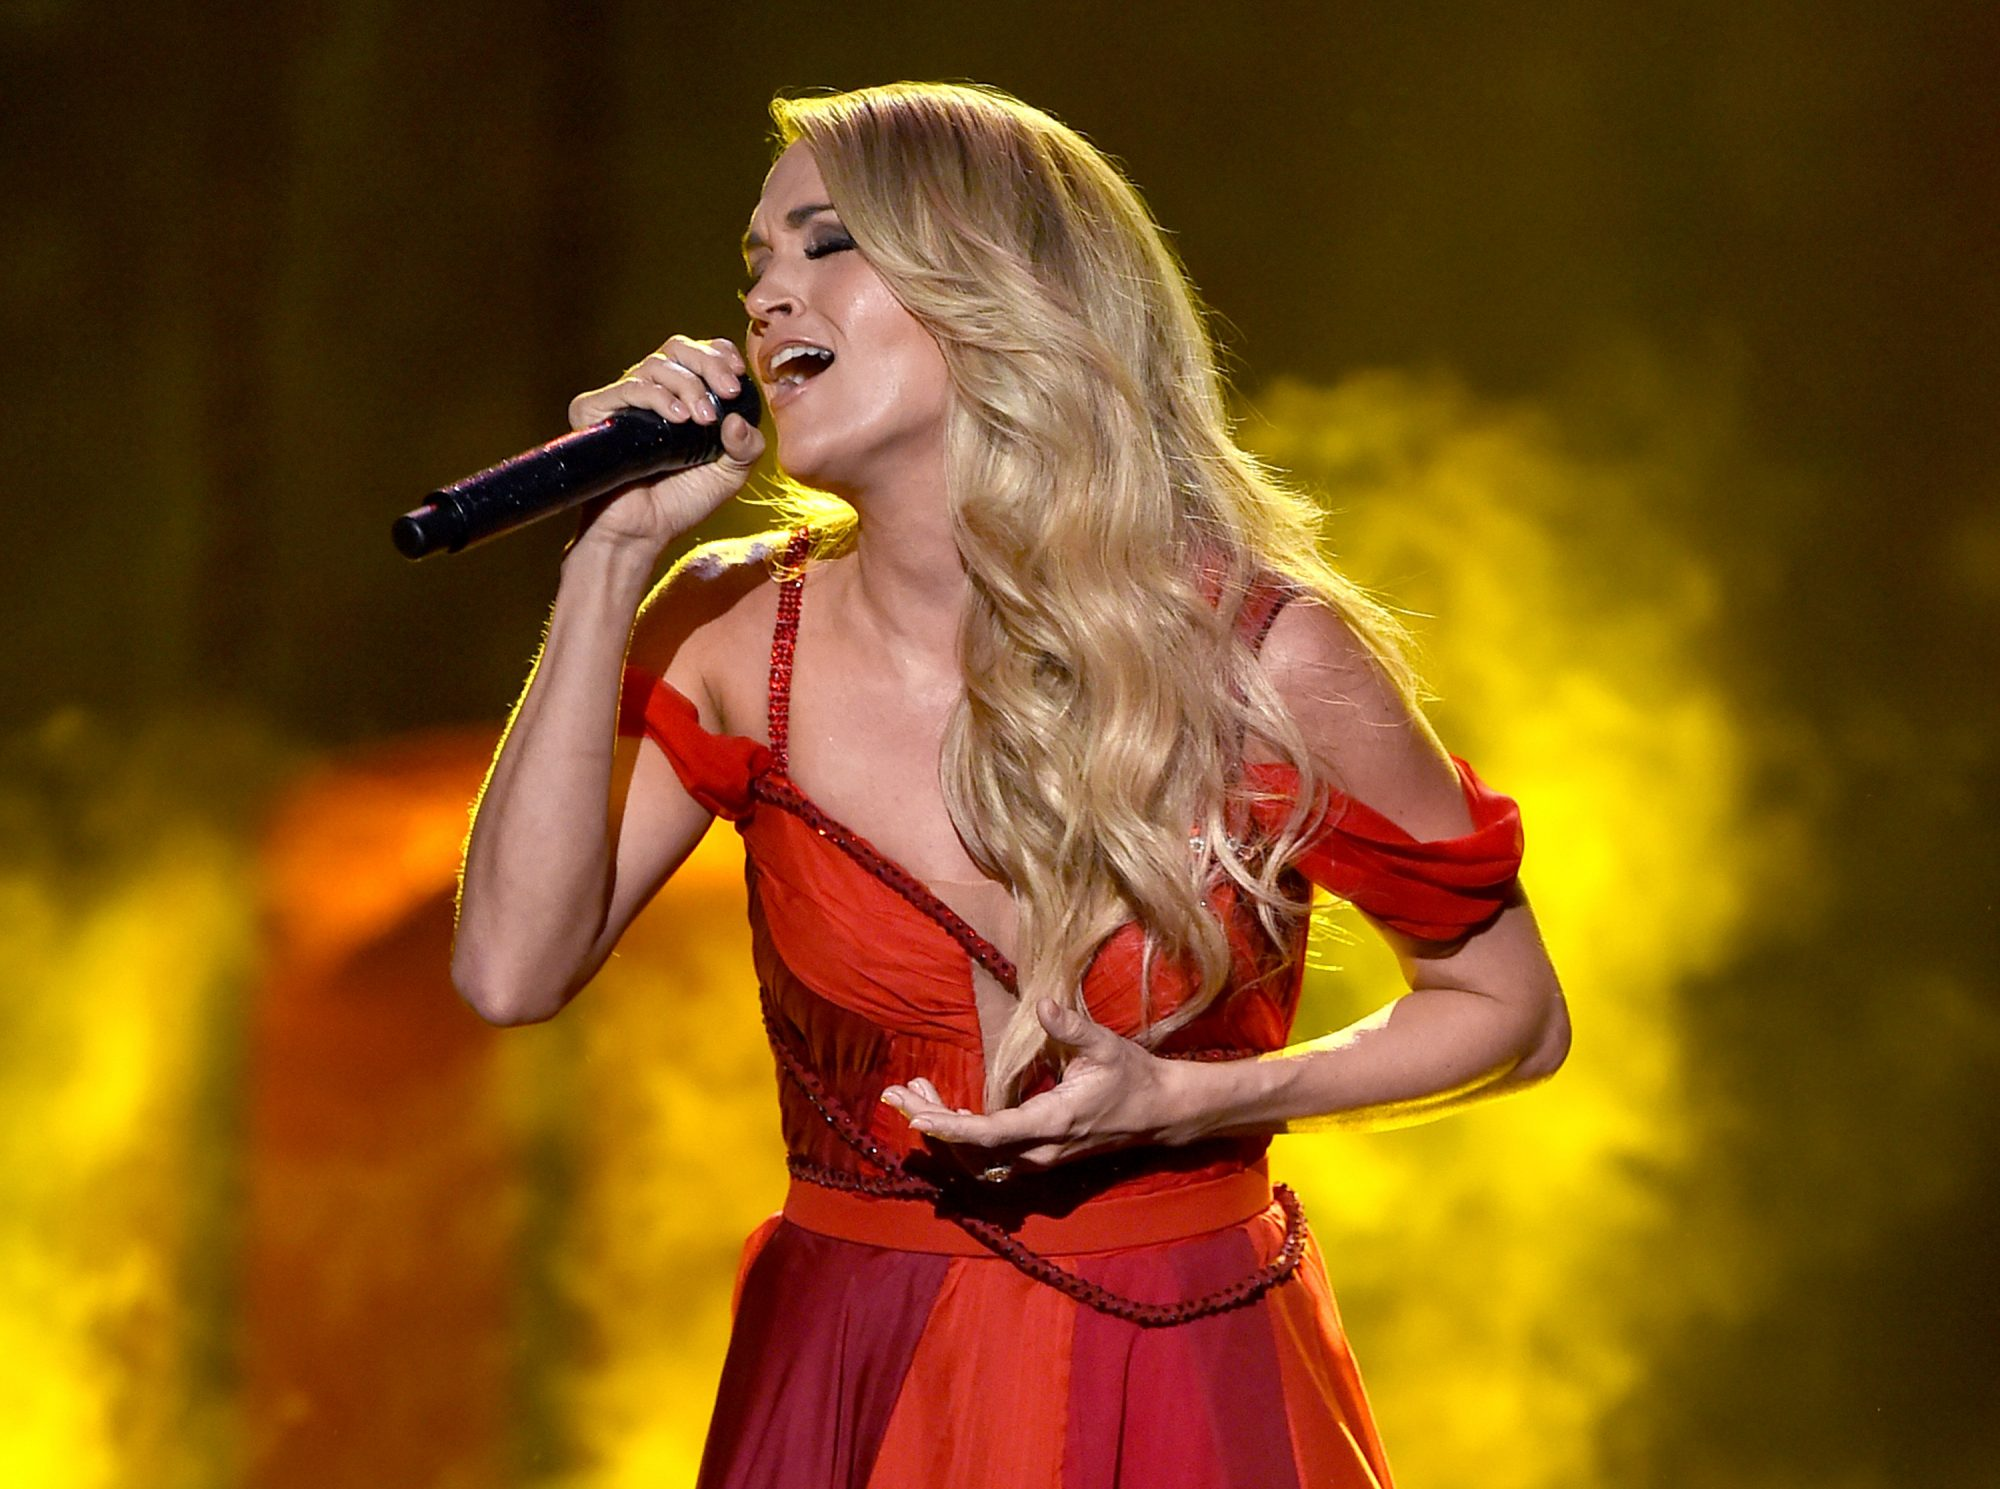 Singer Carrie Underwood performs onstage during the 2015 American Music Awards at Microsoft Theater on November 22, 2015 in Los Angeles, California.